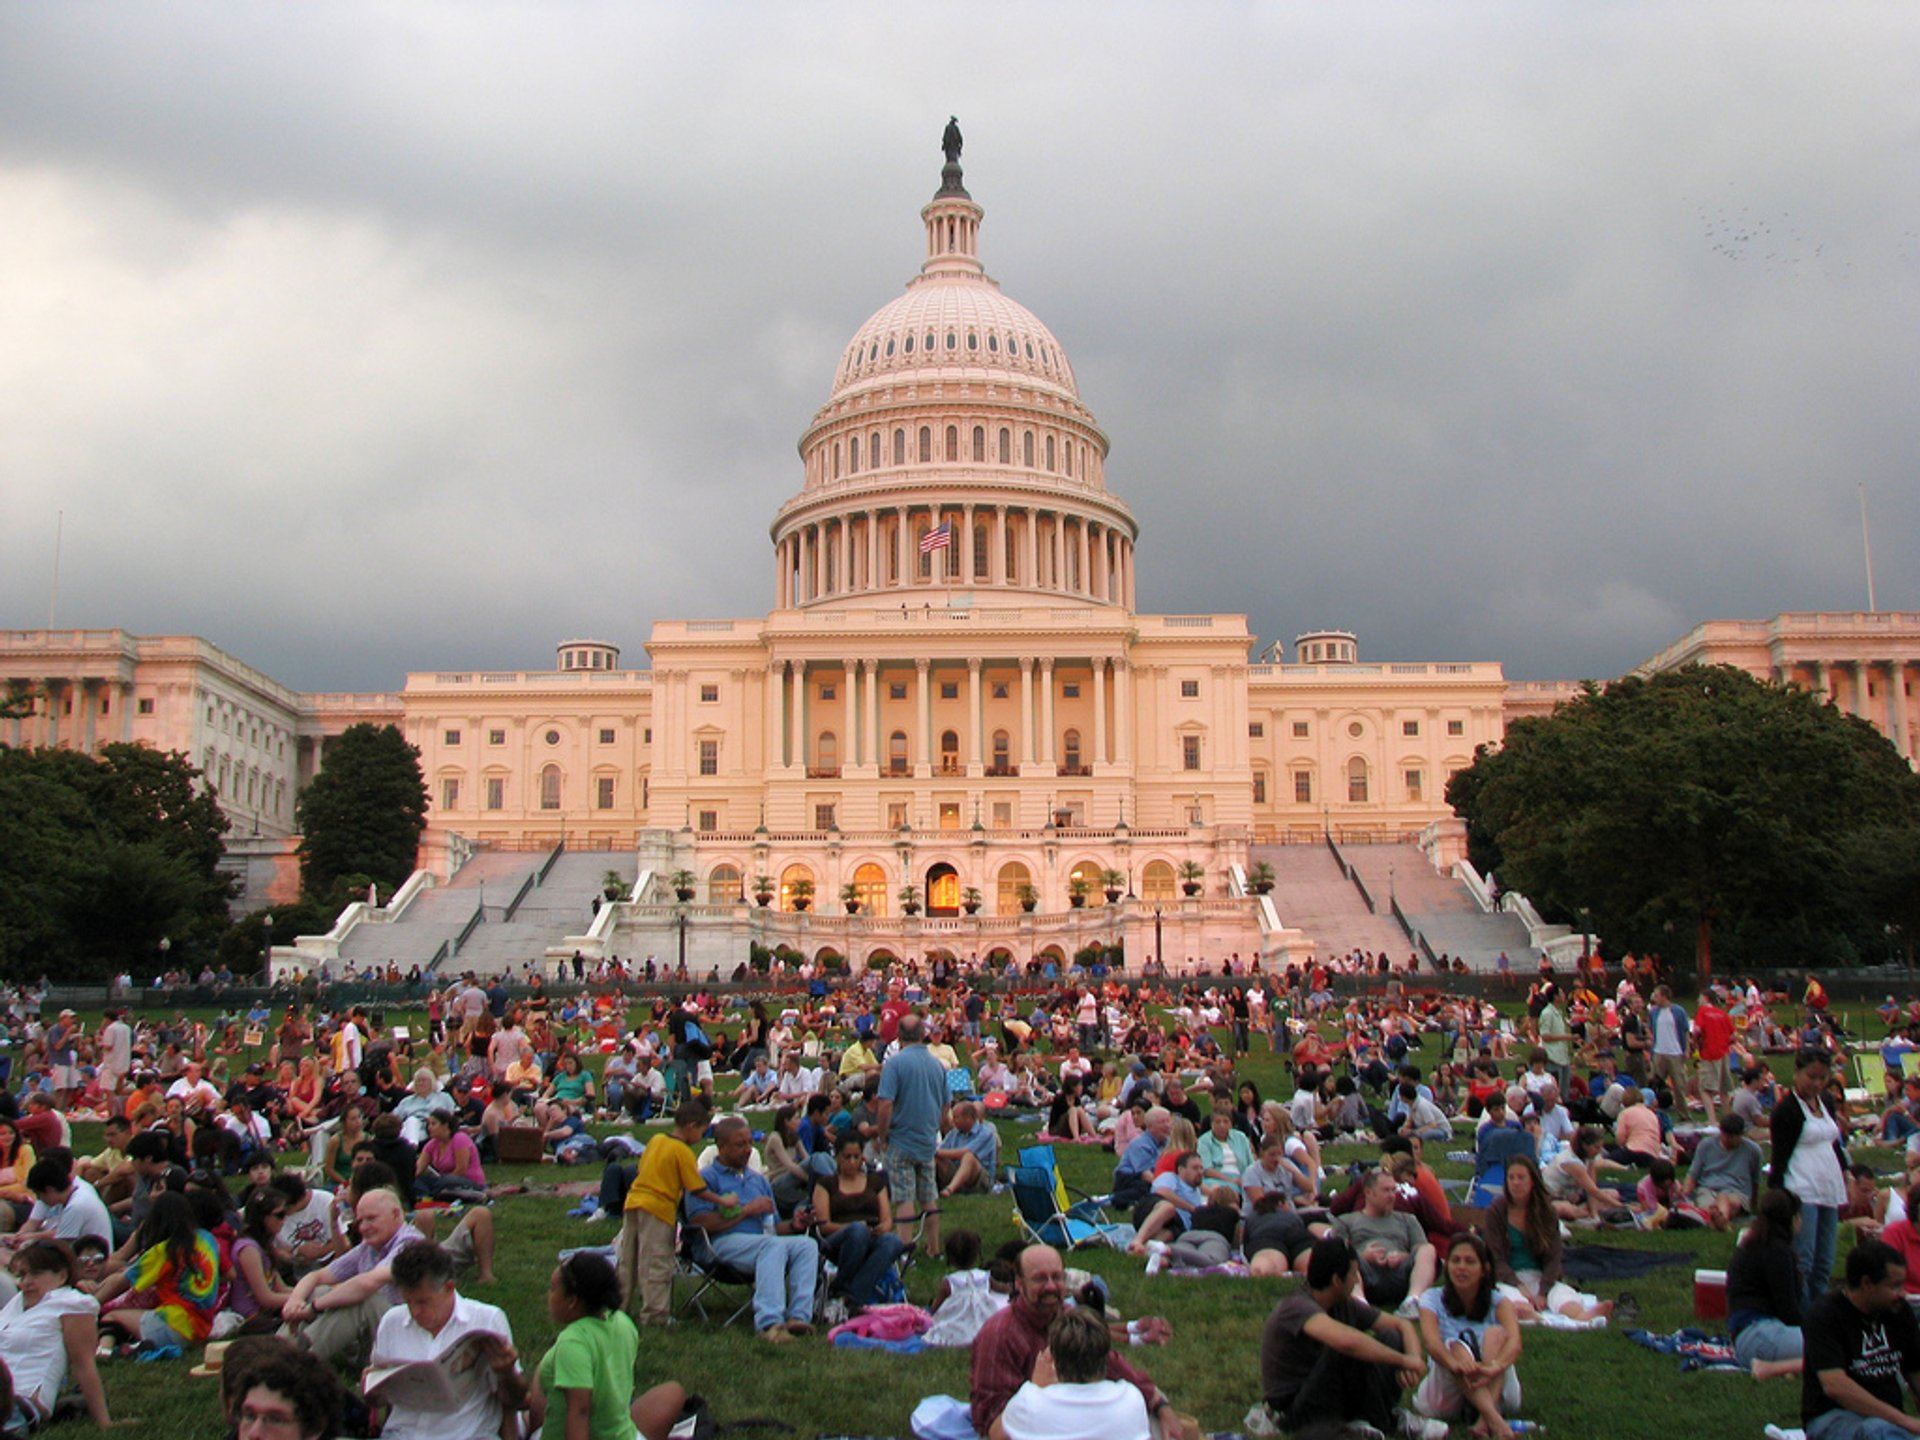 The National Symphony Orchestra: 2009 Labor Day Capitol Concert on the West Lawn on the U.S. Capitol in Washington D.C.  2020